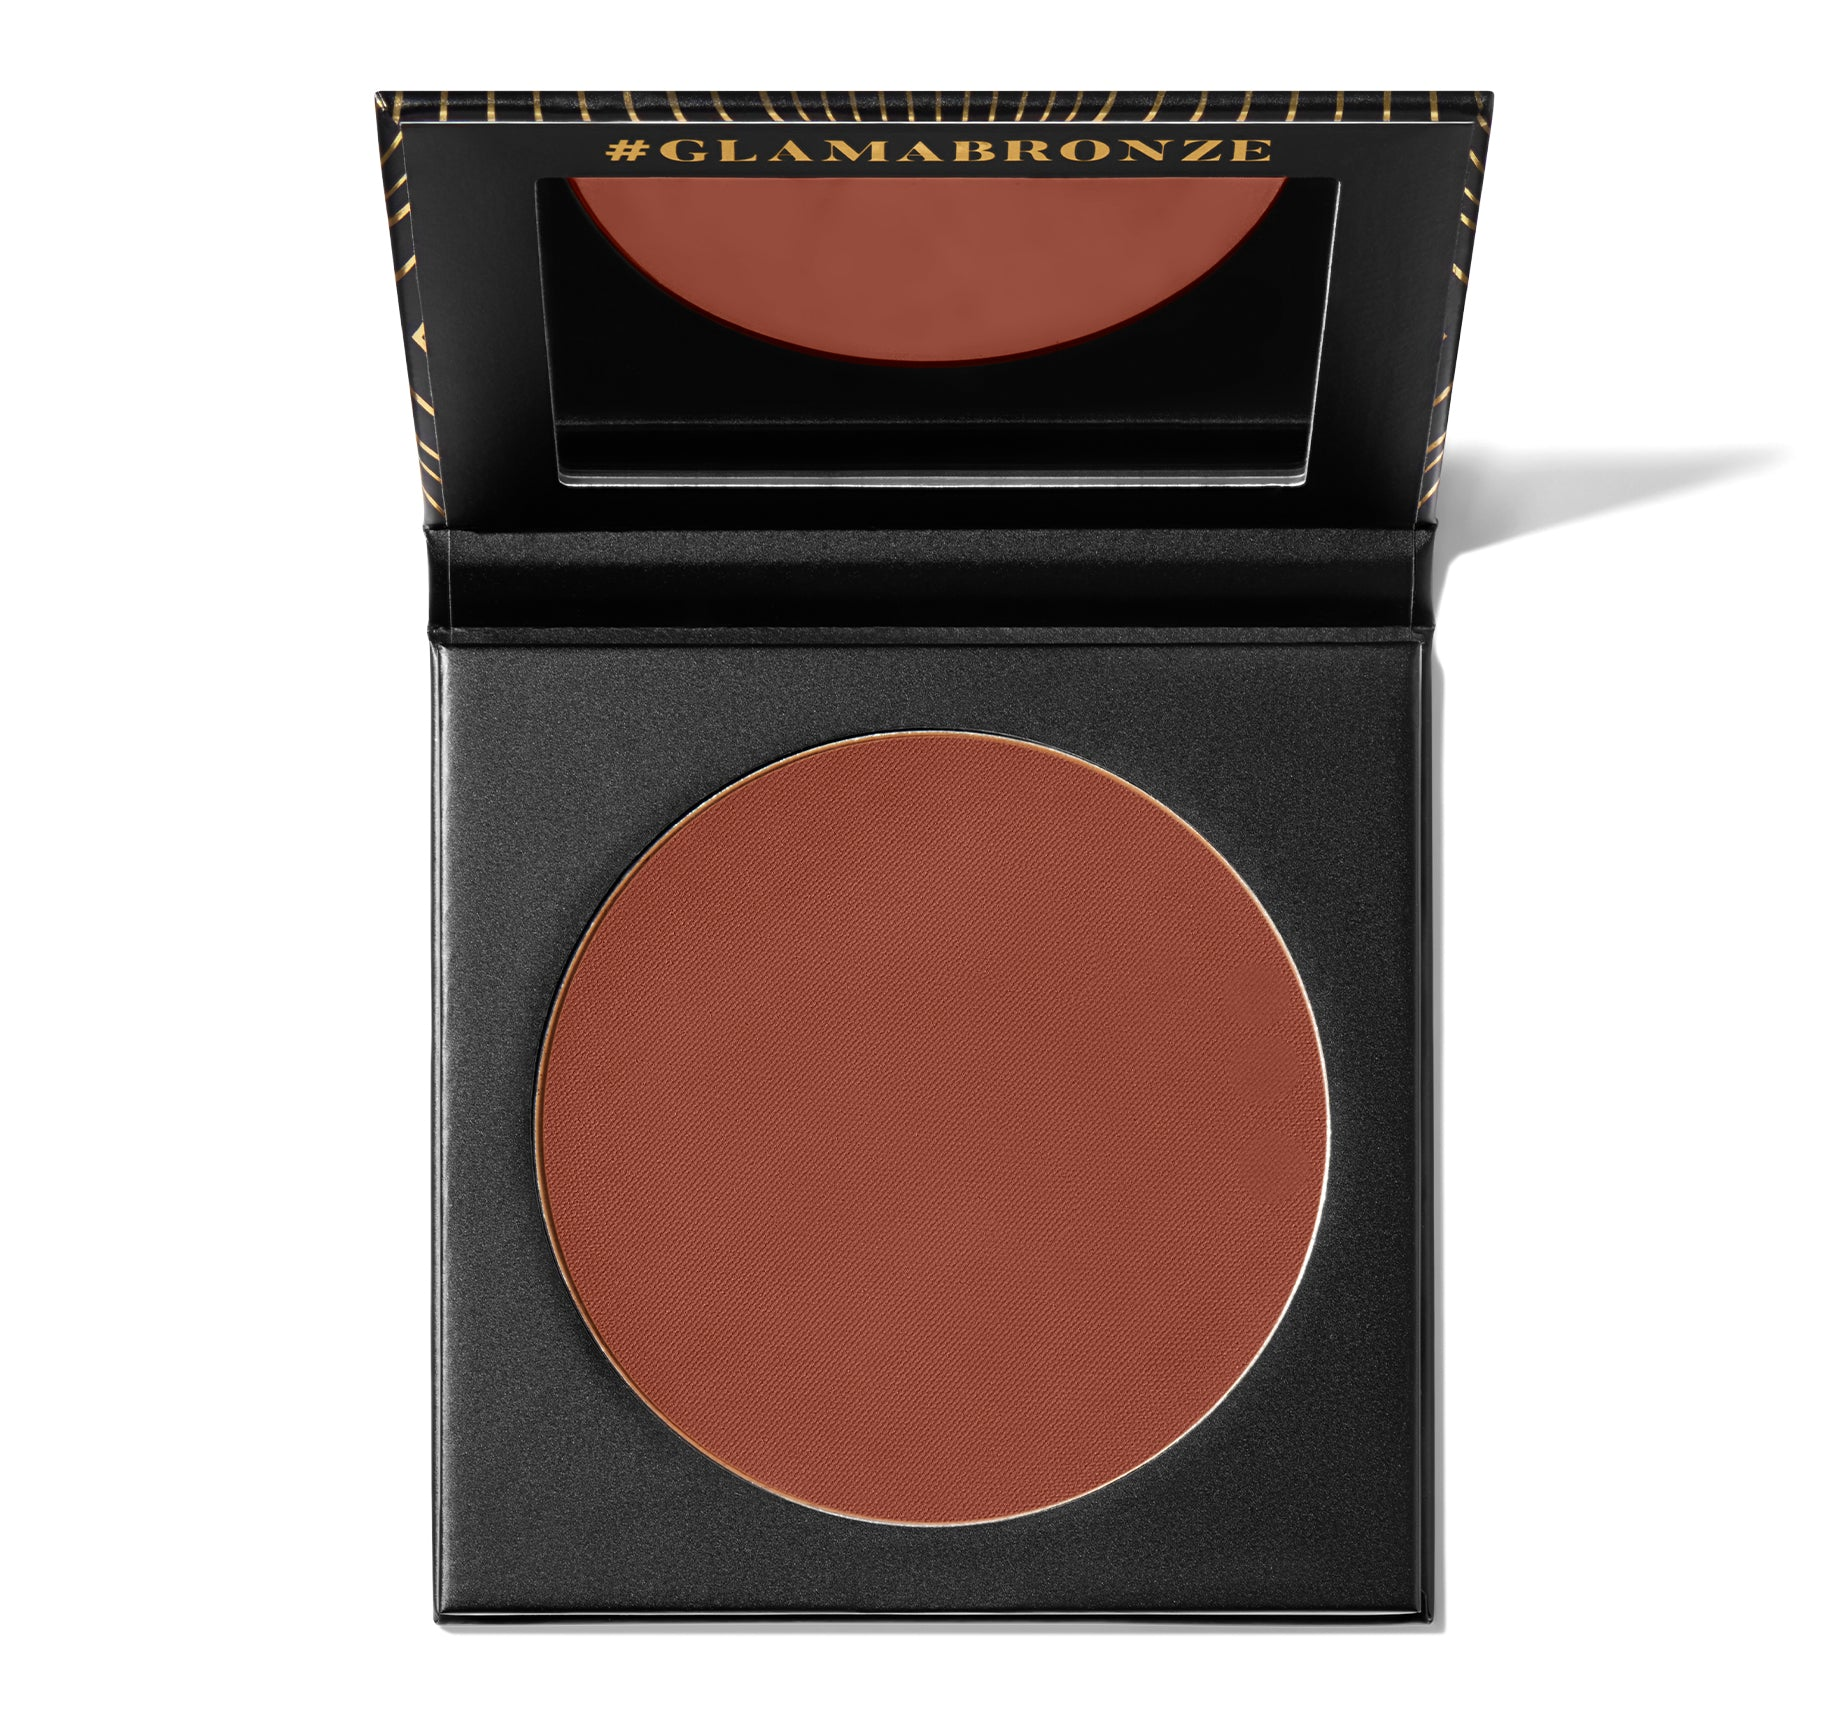 GLAMABRONZE FACE & BODY BRONZER - SUPREME, view larger image